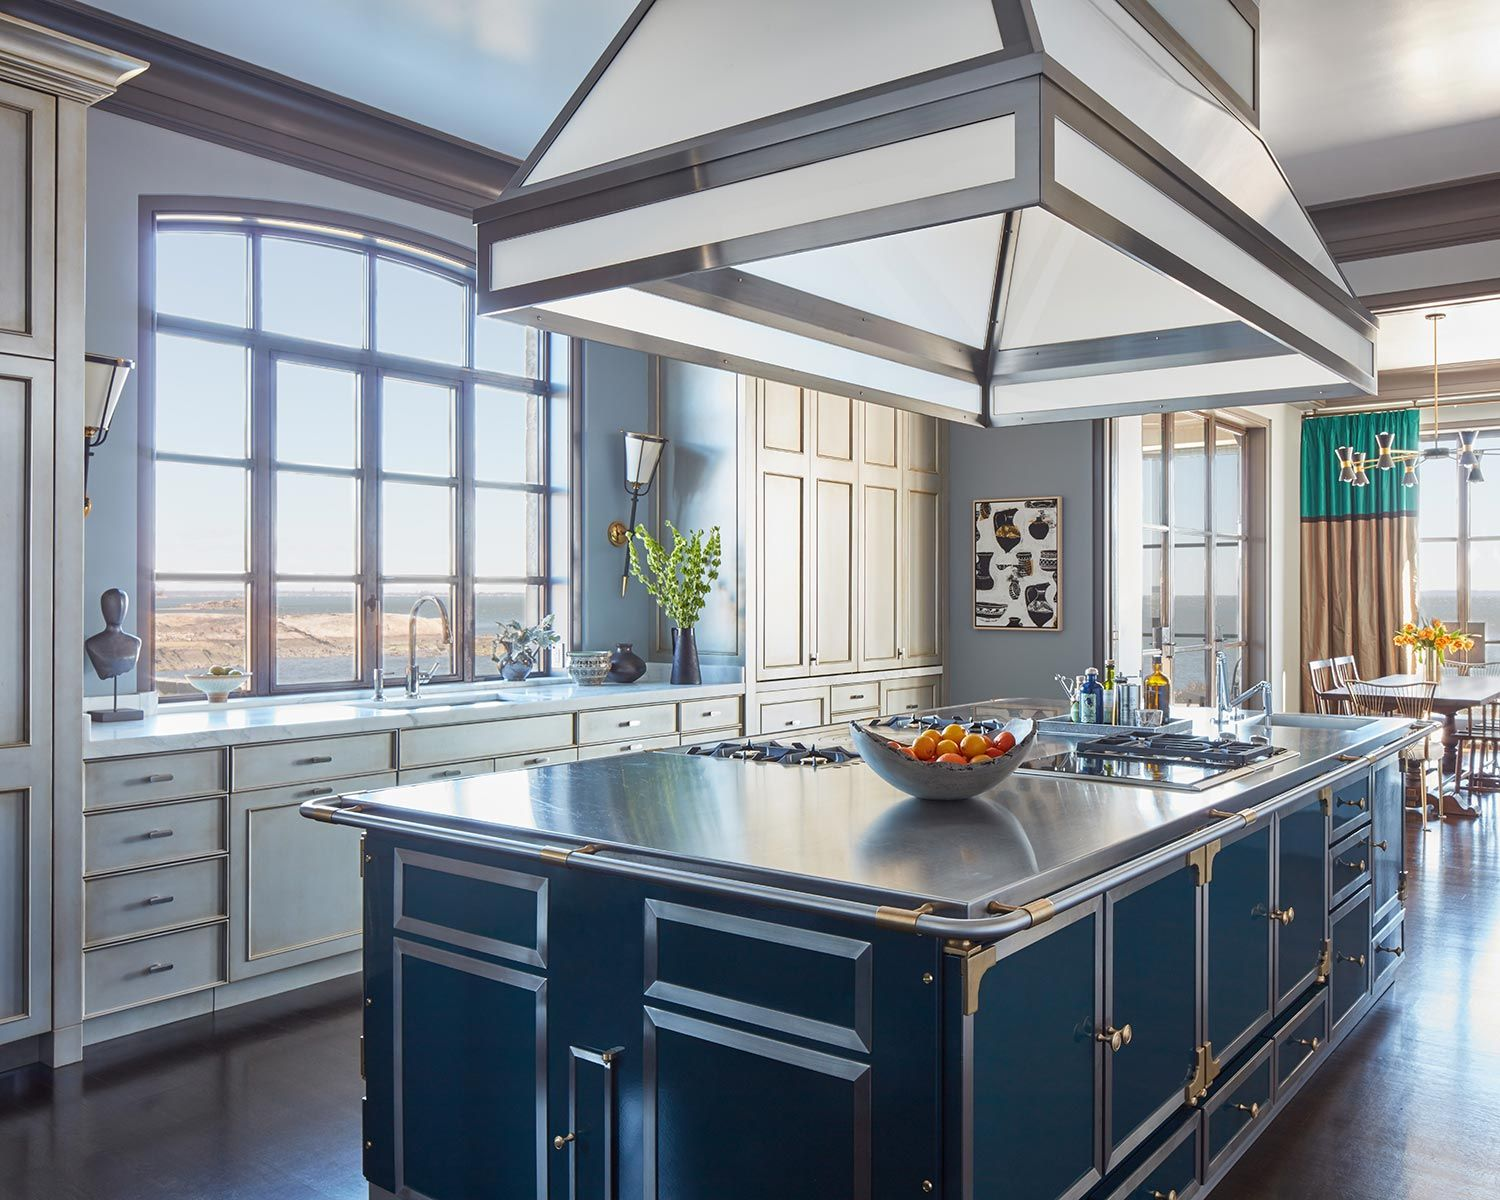 Purchase Ny St Charles Of New York Luxury Kitchen Design Classic Kitchens Traditional Kitchen Design Luxury Kitchen Design